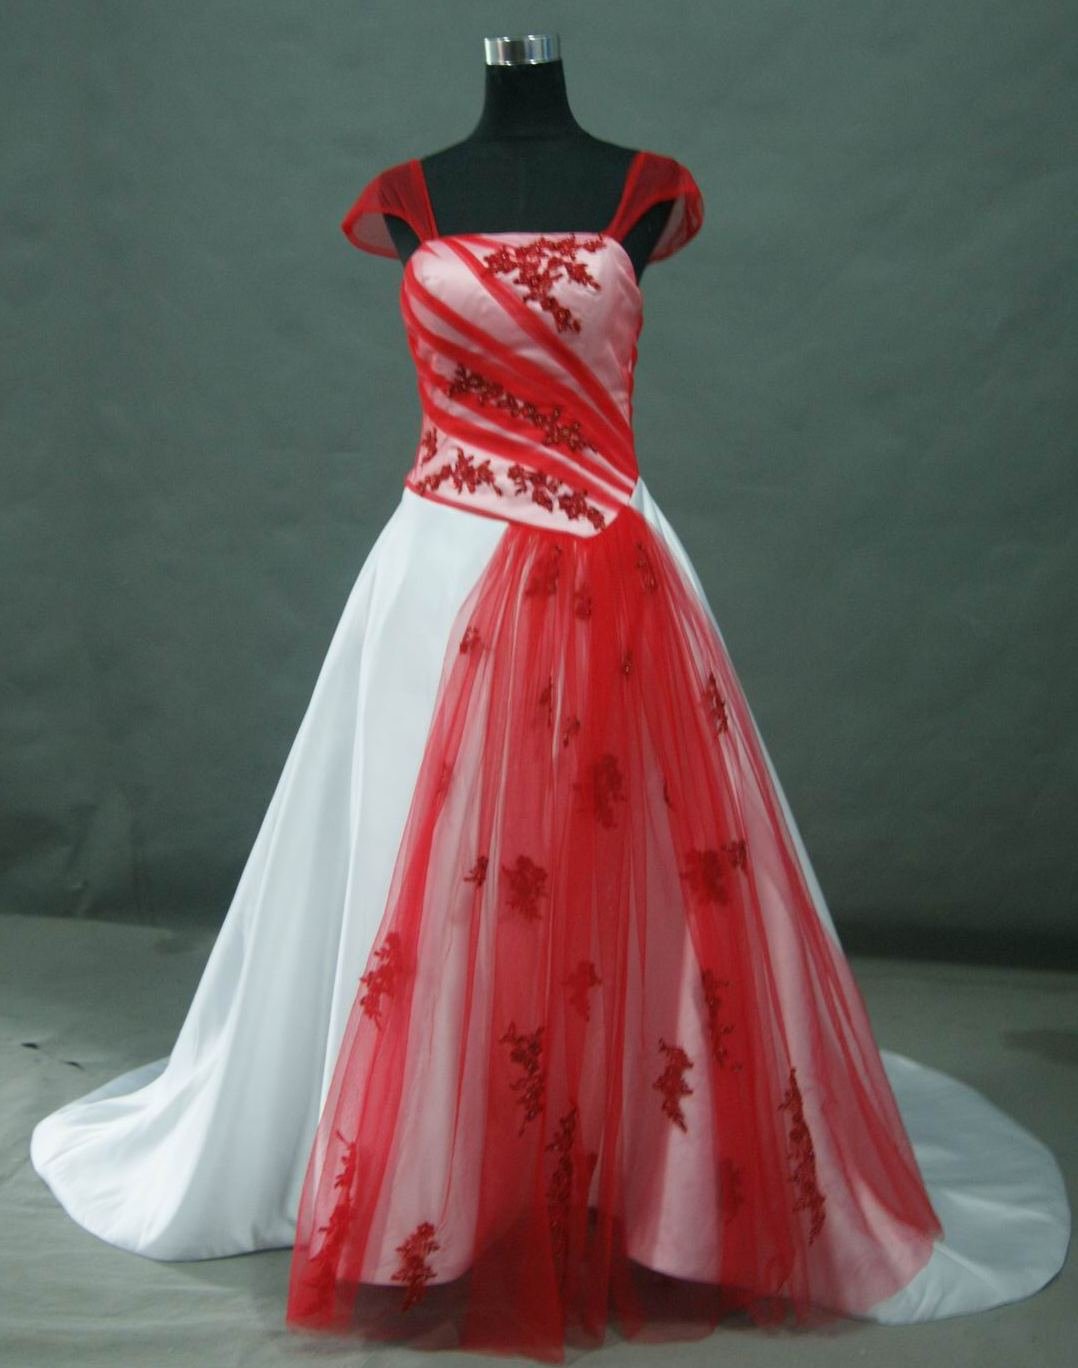 Bridal Gowns With Color Red And White Wedding Dress With Cap Sleeves